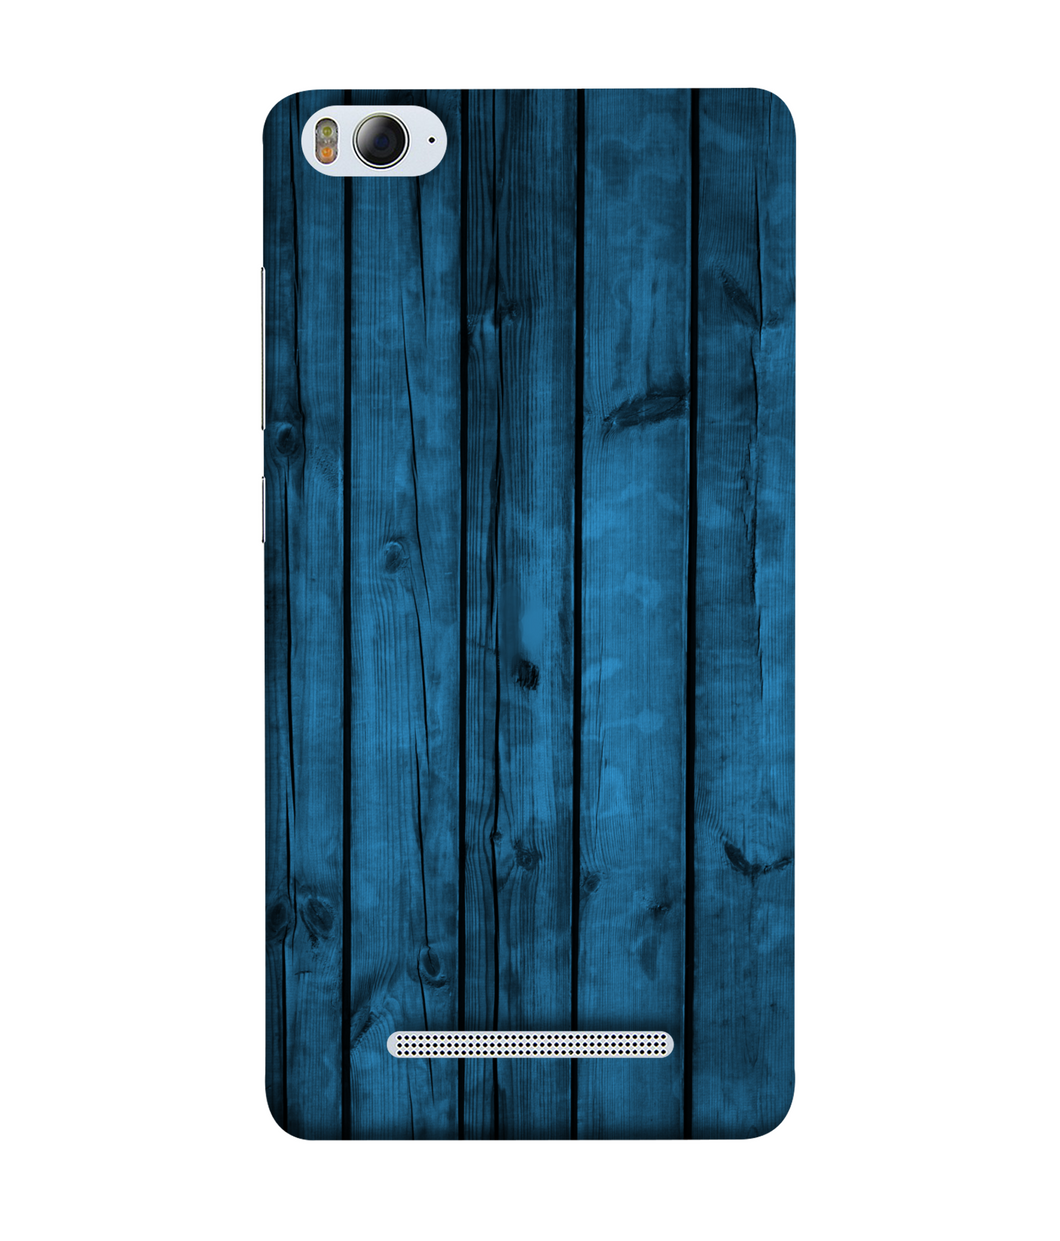 Xiaomi MI4I bluewoods mobile cover